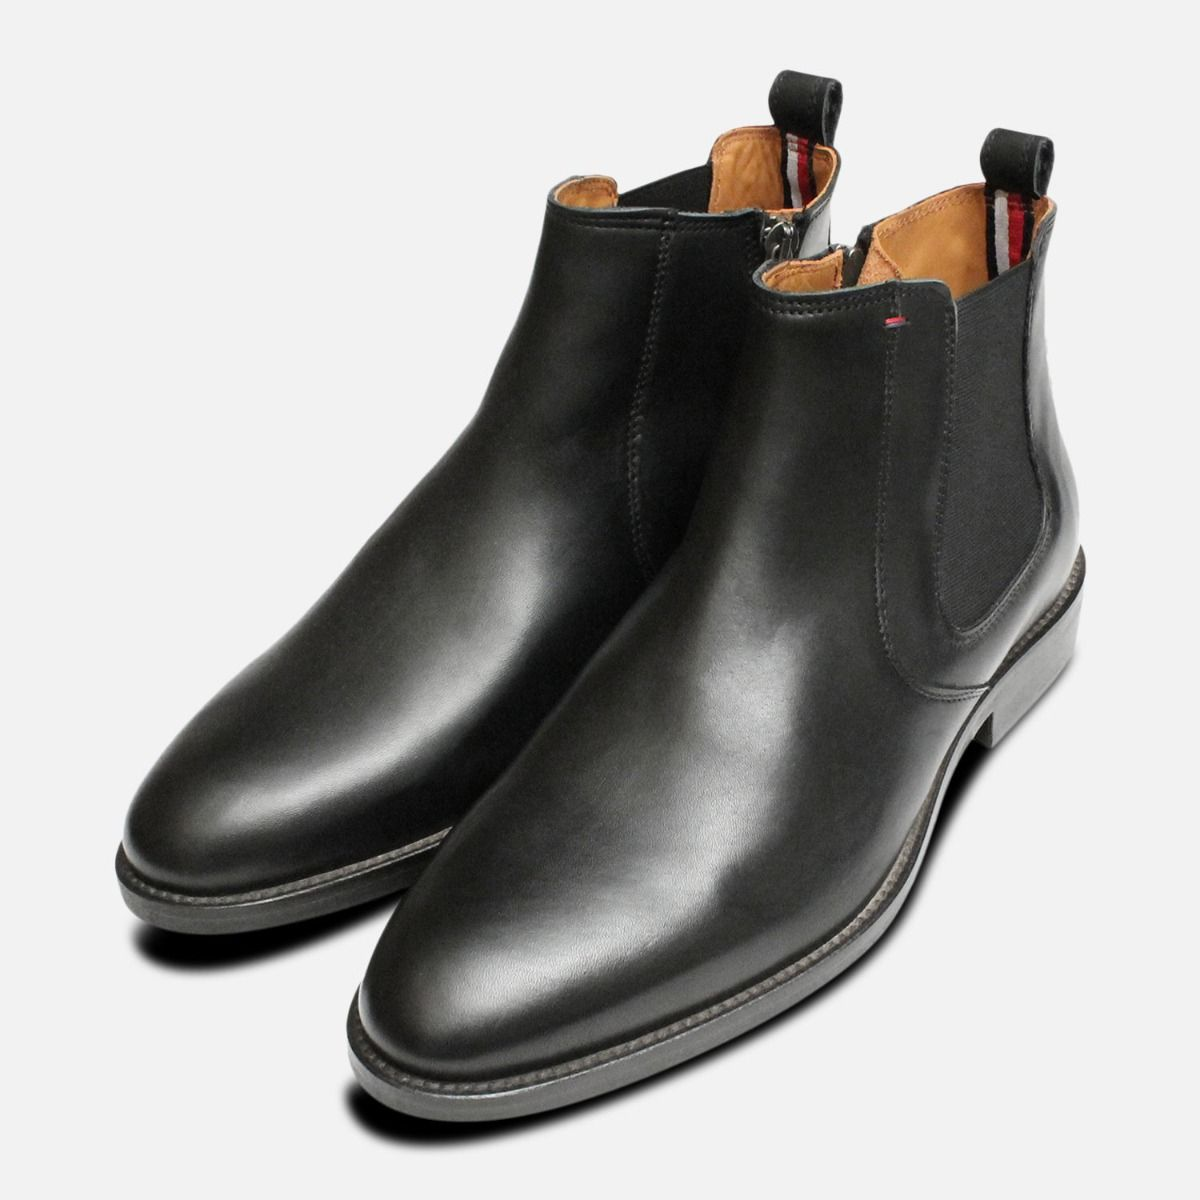 b52d7549a0af8 Black Tommy Hilfiger Daytona Dress Chelsea Boots